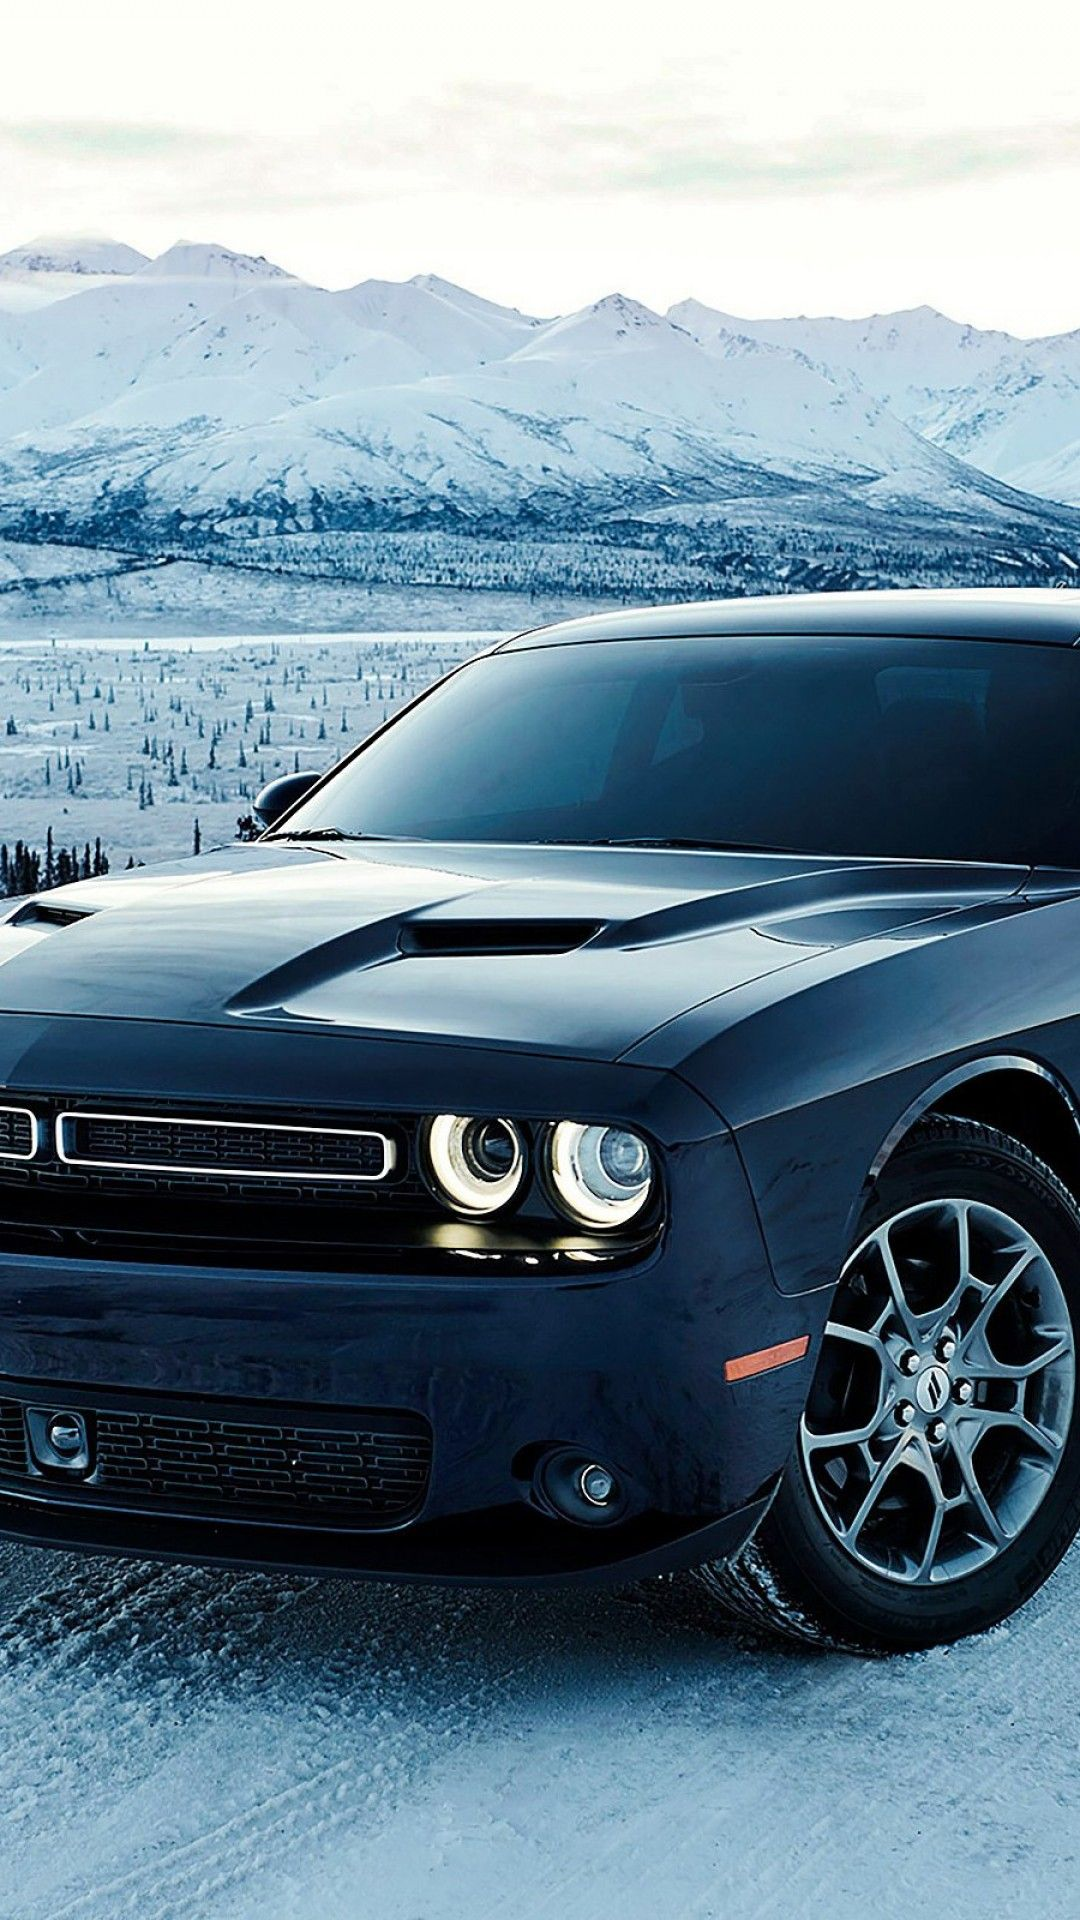 Dodge Challenger Car Hd Wallpaper For Desktop And Mobiles Iphone S P